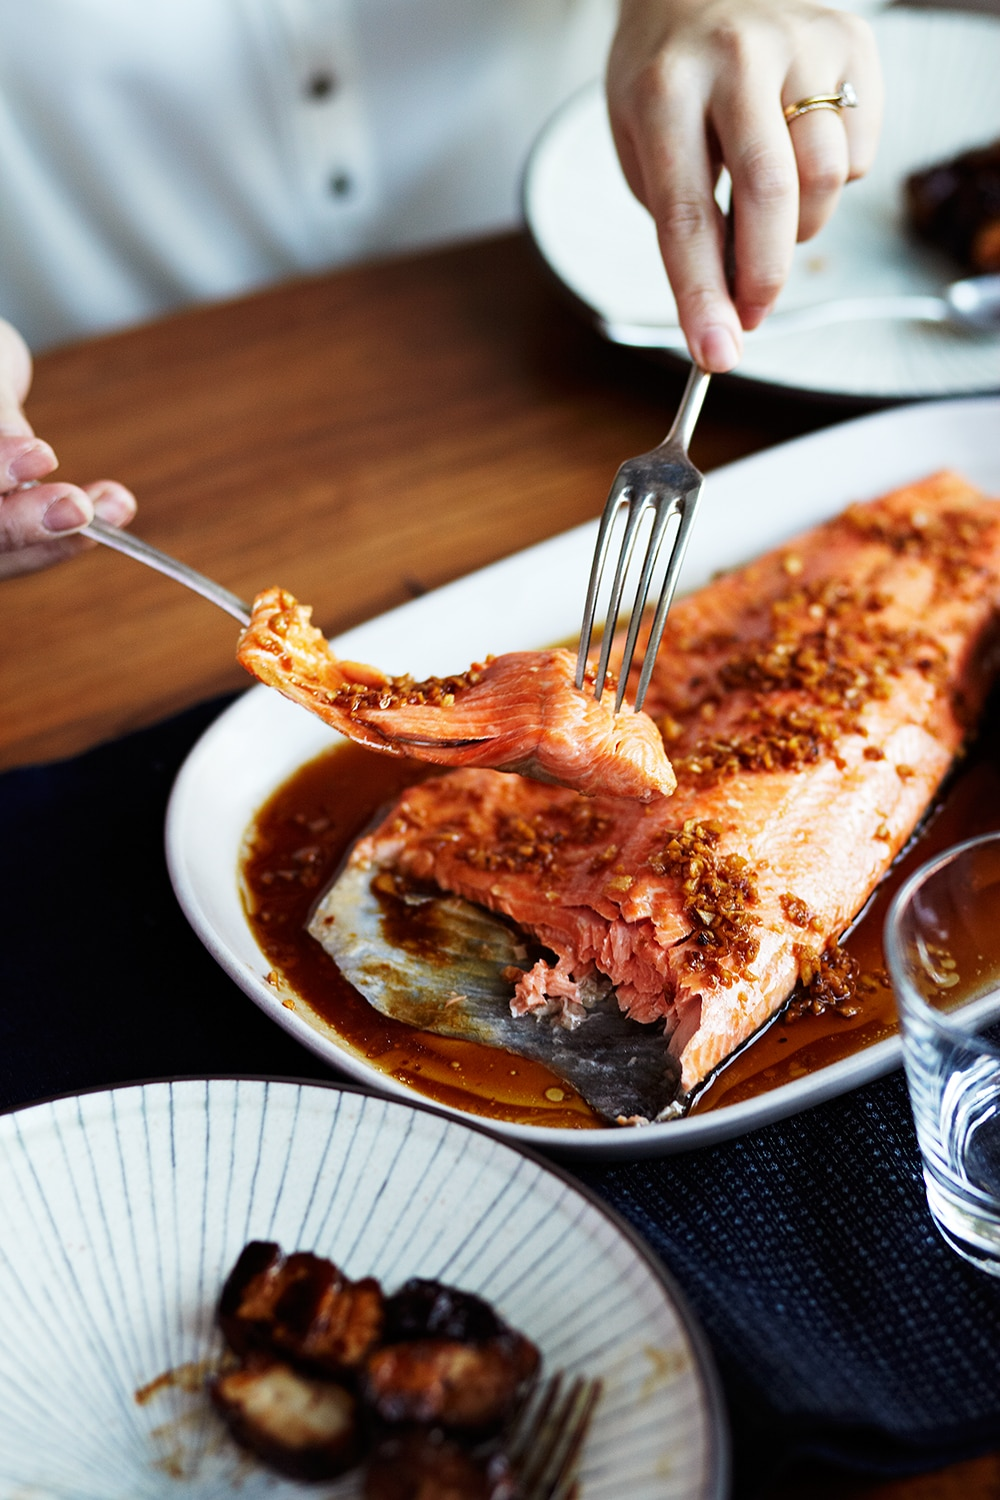 Ocean trout with garlic and soy